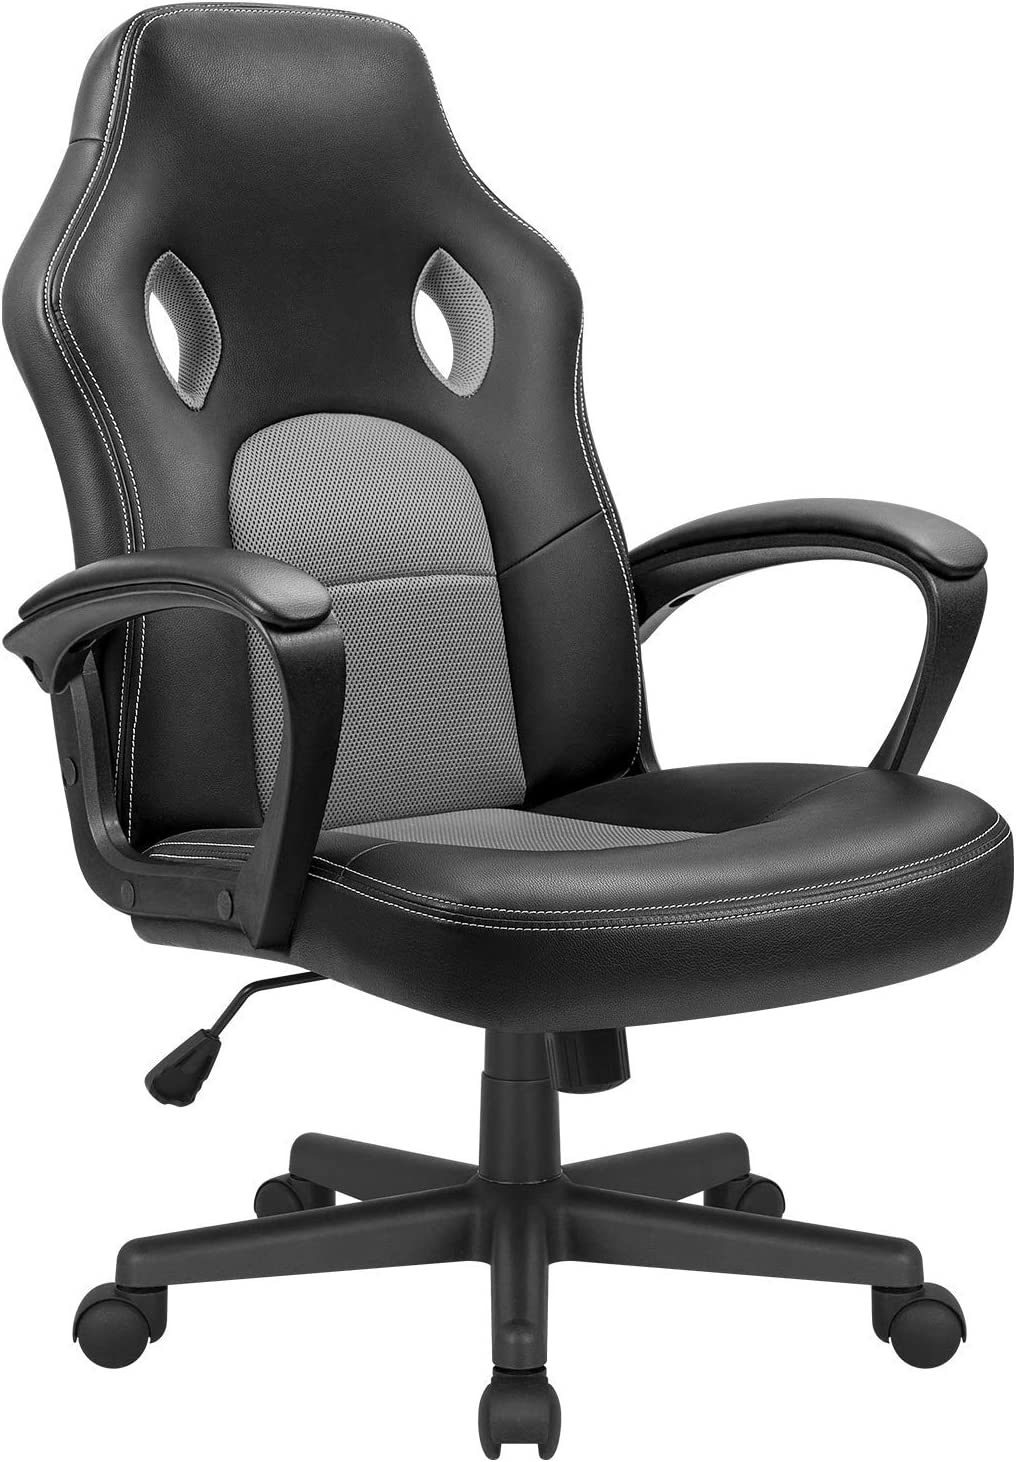 KaiMeng Office Gaming Chair Leather Computer Chair High Back Ergonomic Adjustable Racing Chair Executive Conference Chair (Grey)